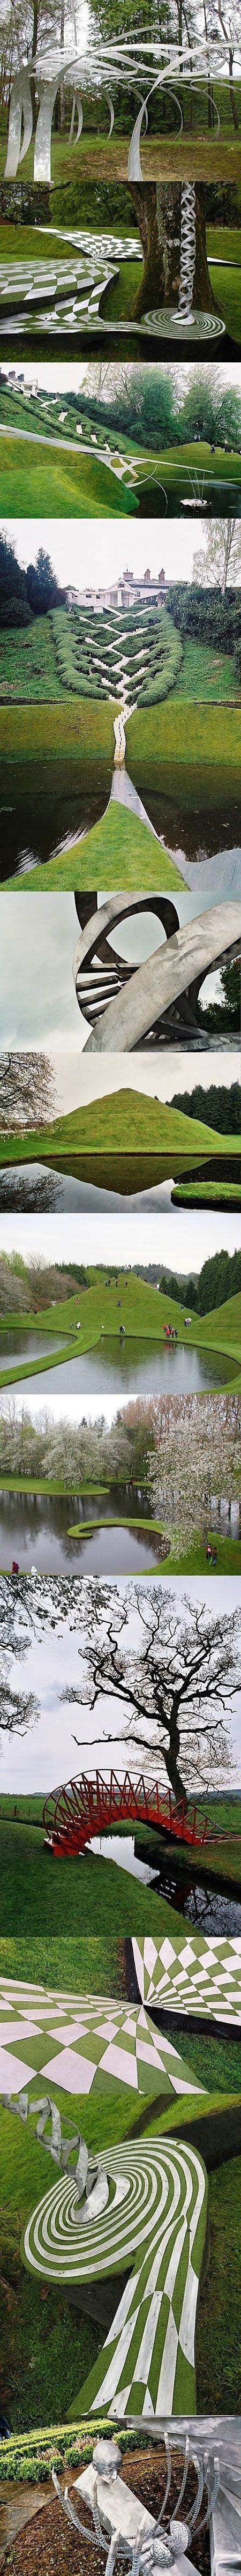 The Garden of Cosmic Speculation in Scotland- we went to part of this at one point, the one with the hill you can walk on